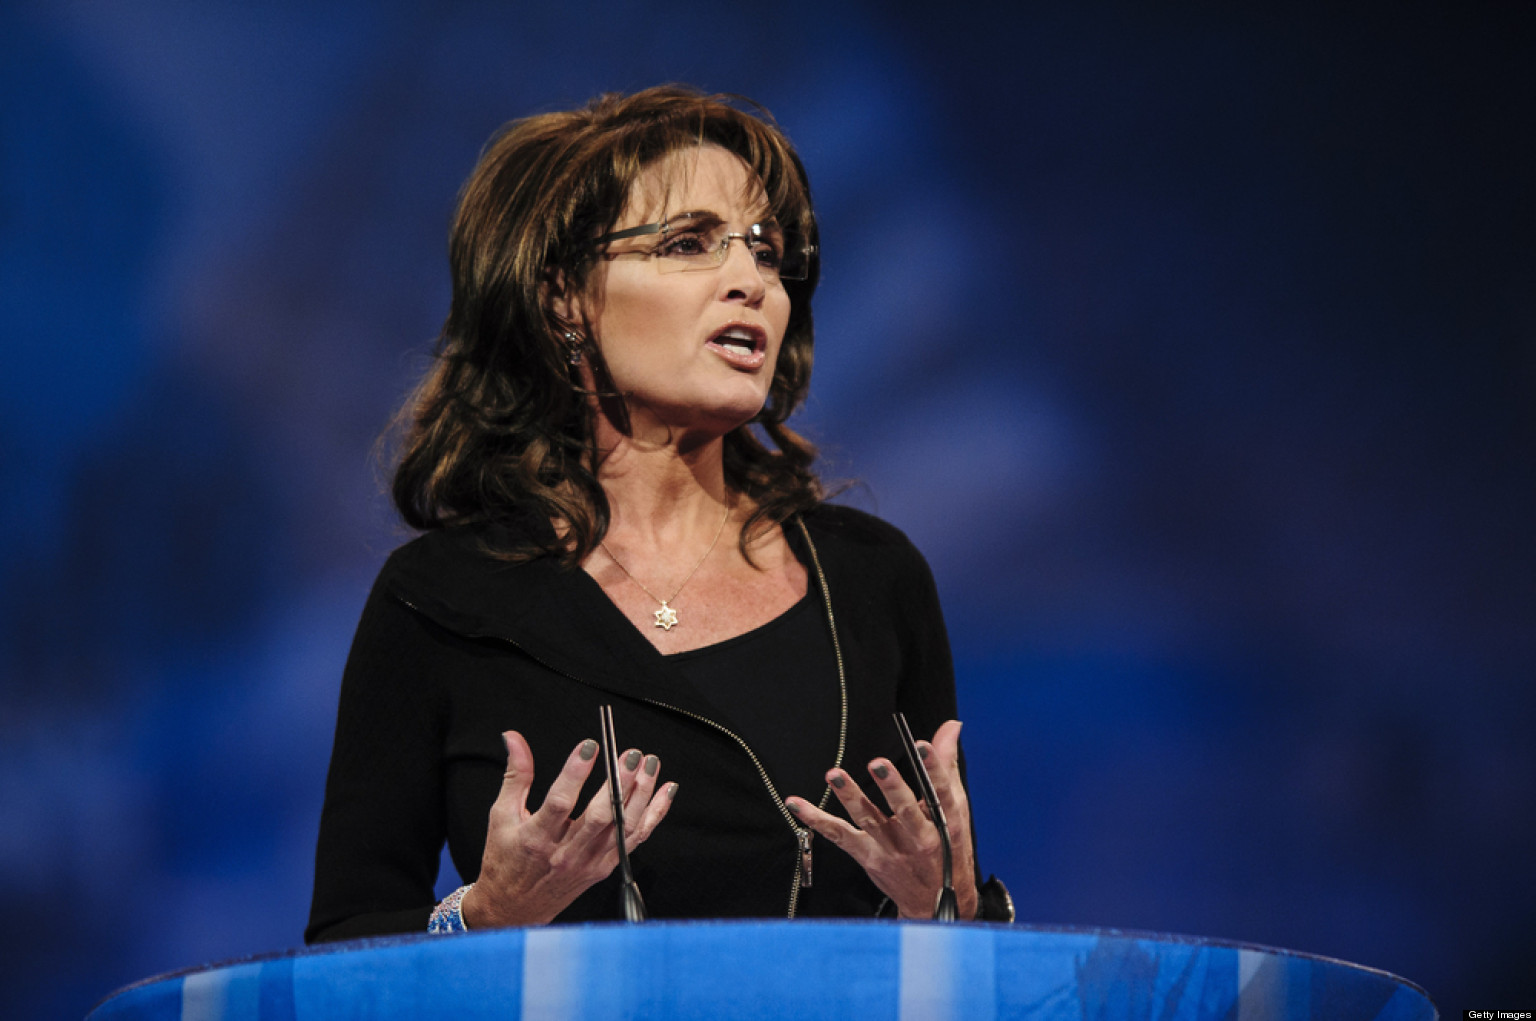 https://i2.wp.com/i.huffpost.com/gen/1120149/thumbs/o-SARAH-PALIN-FREEDOM-facebook.jpg